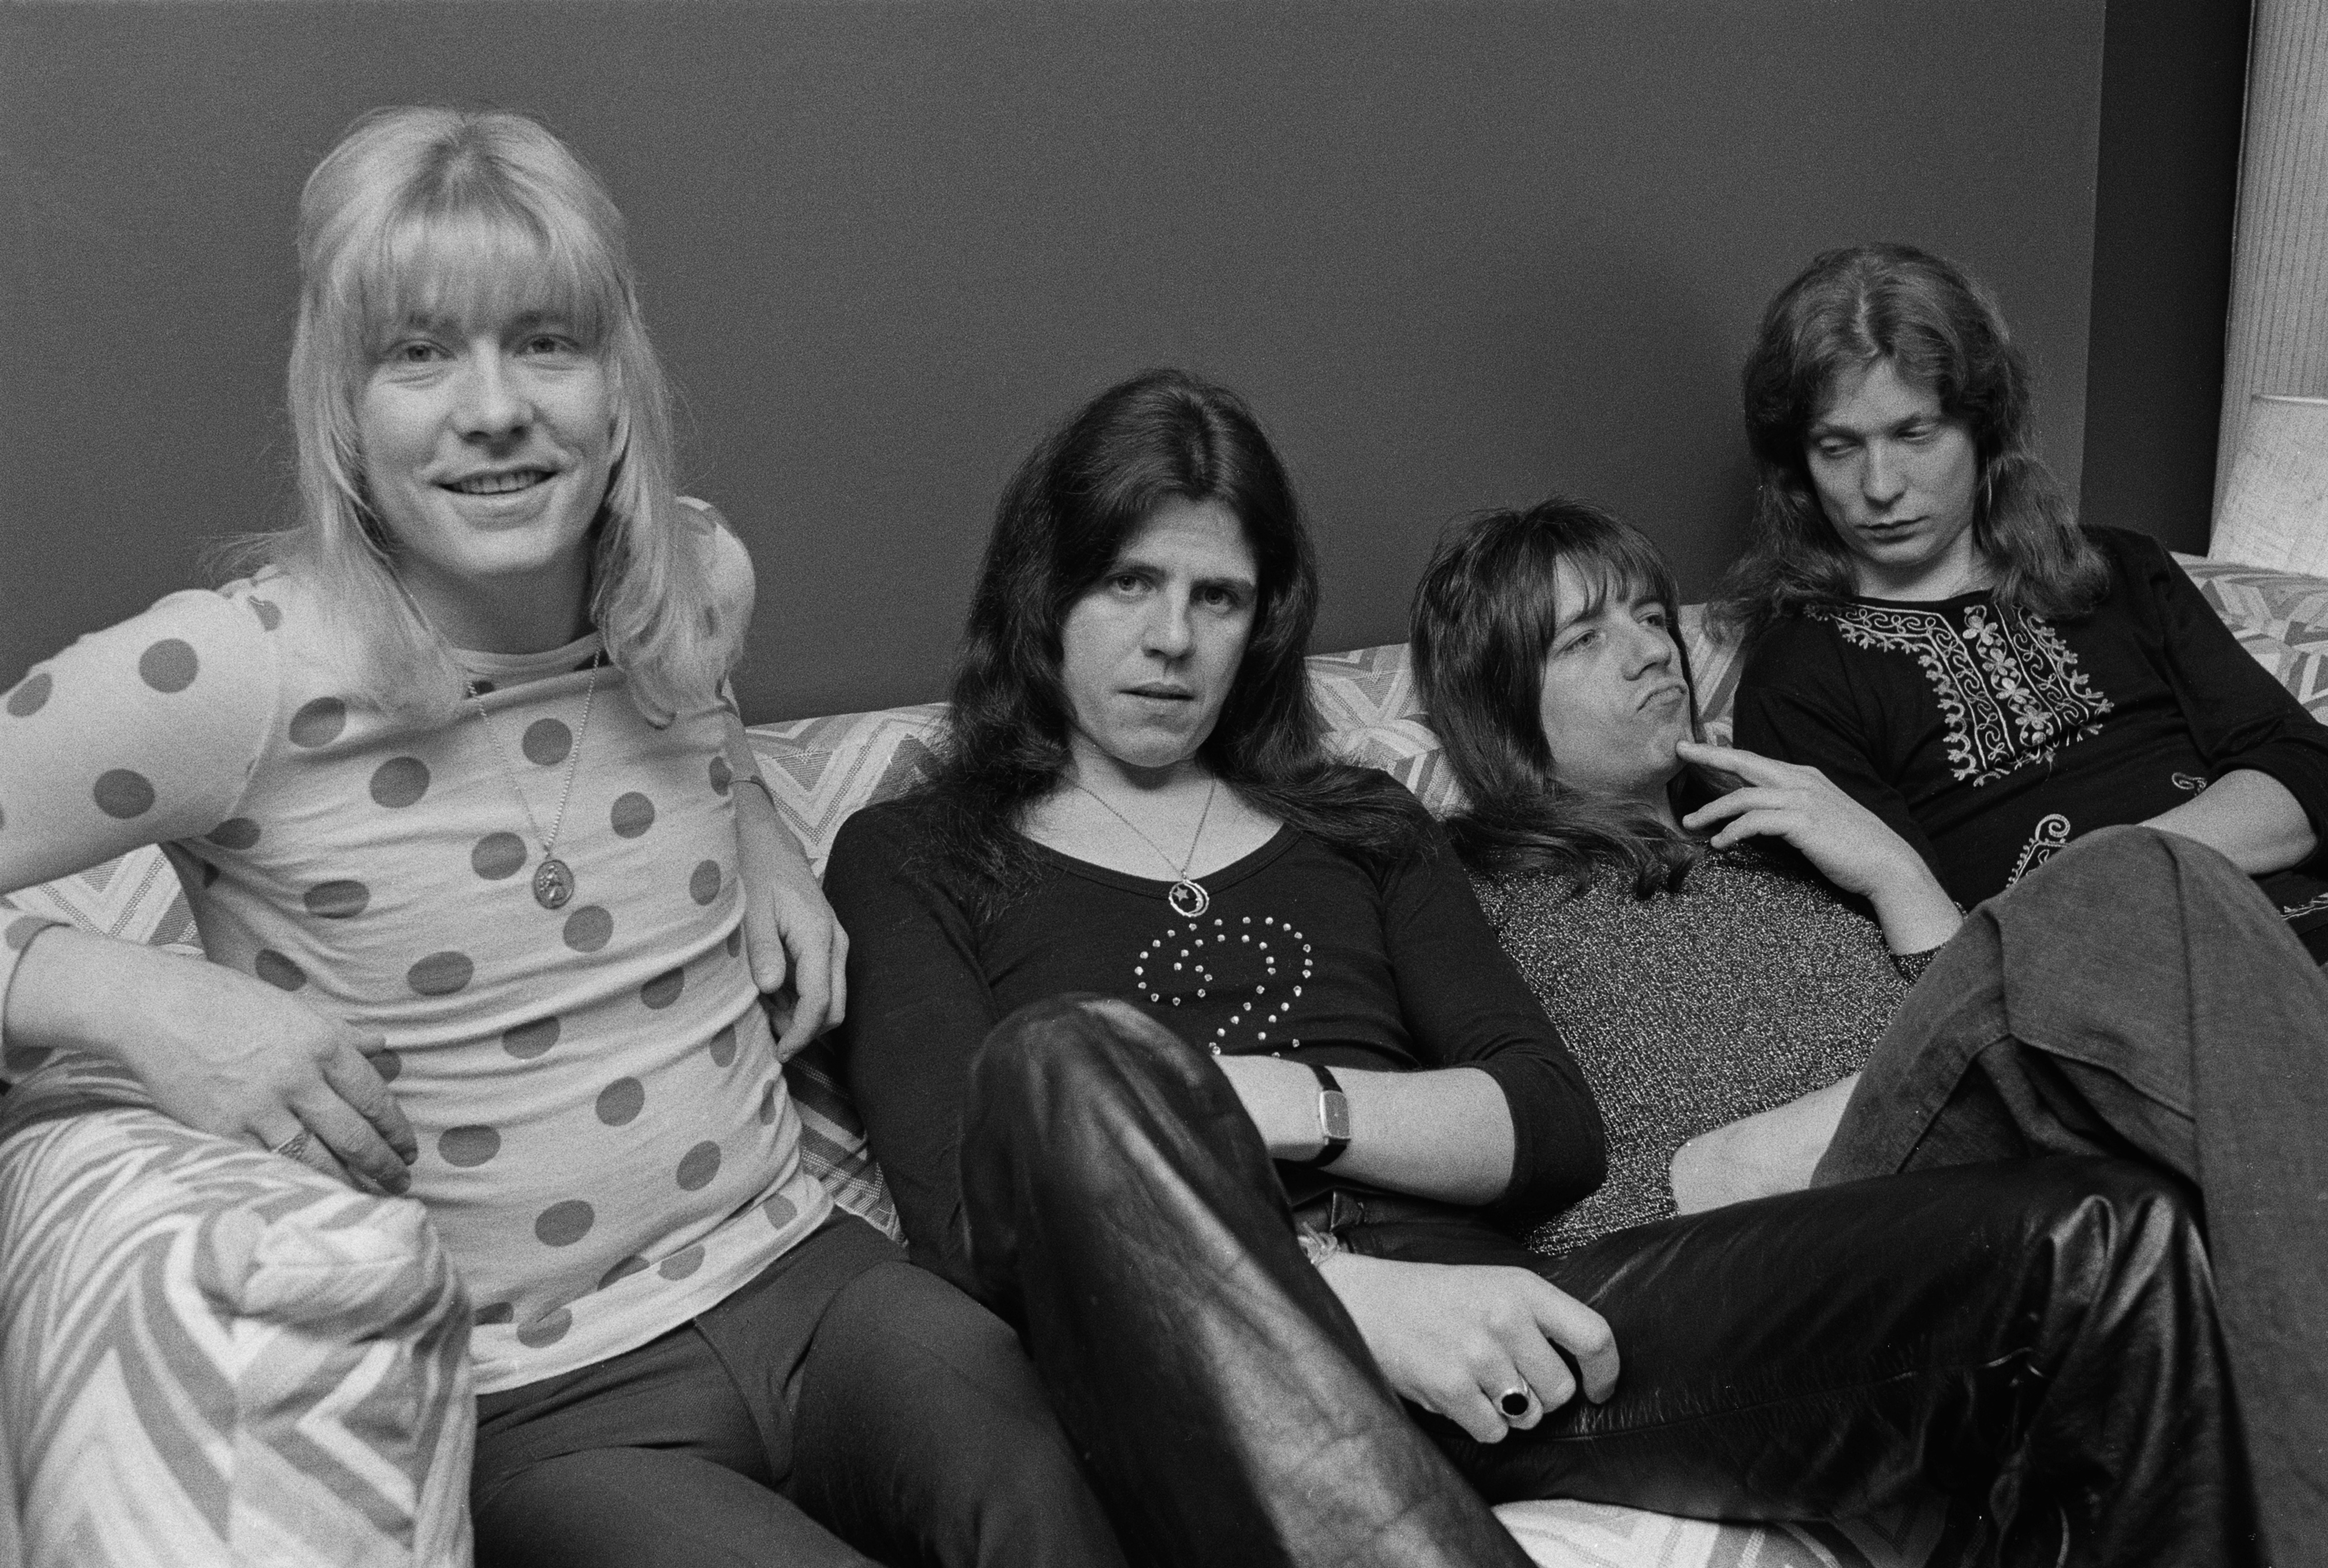 British glam rock group The Sweet, 16th January 1974. Left to right: Brian Connolly (1945 - 1997), Mick Tucker, Andy Scott an